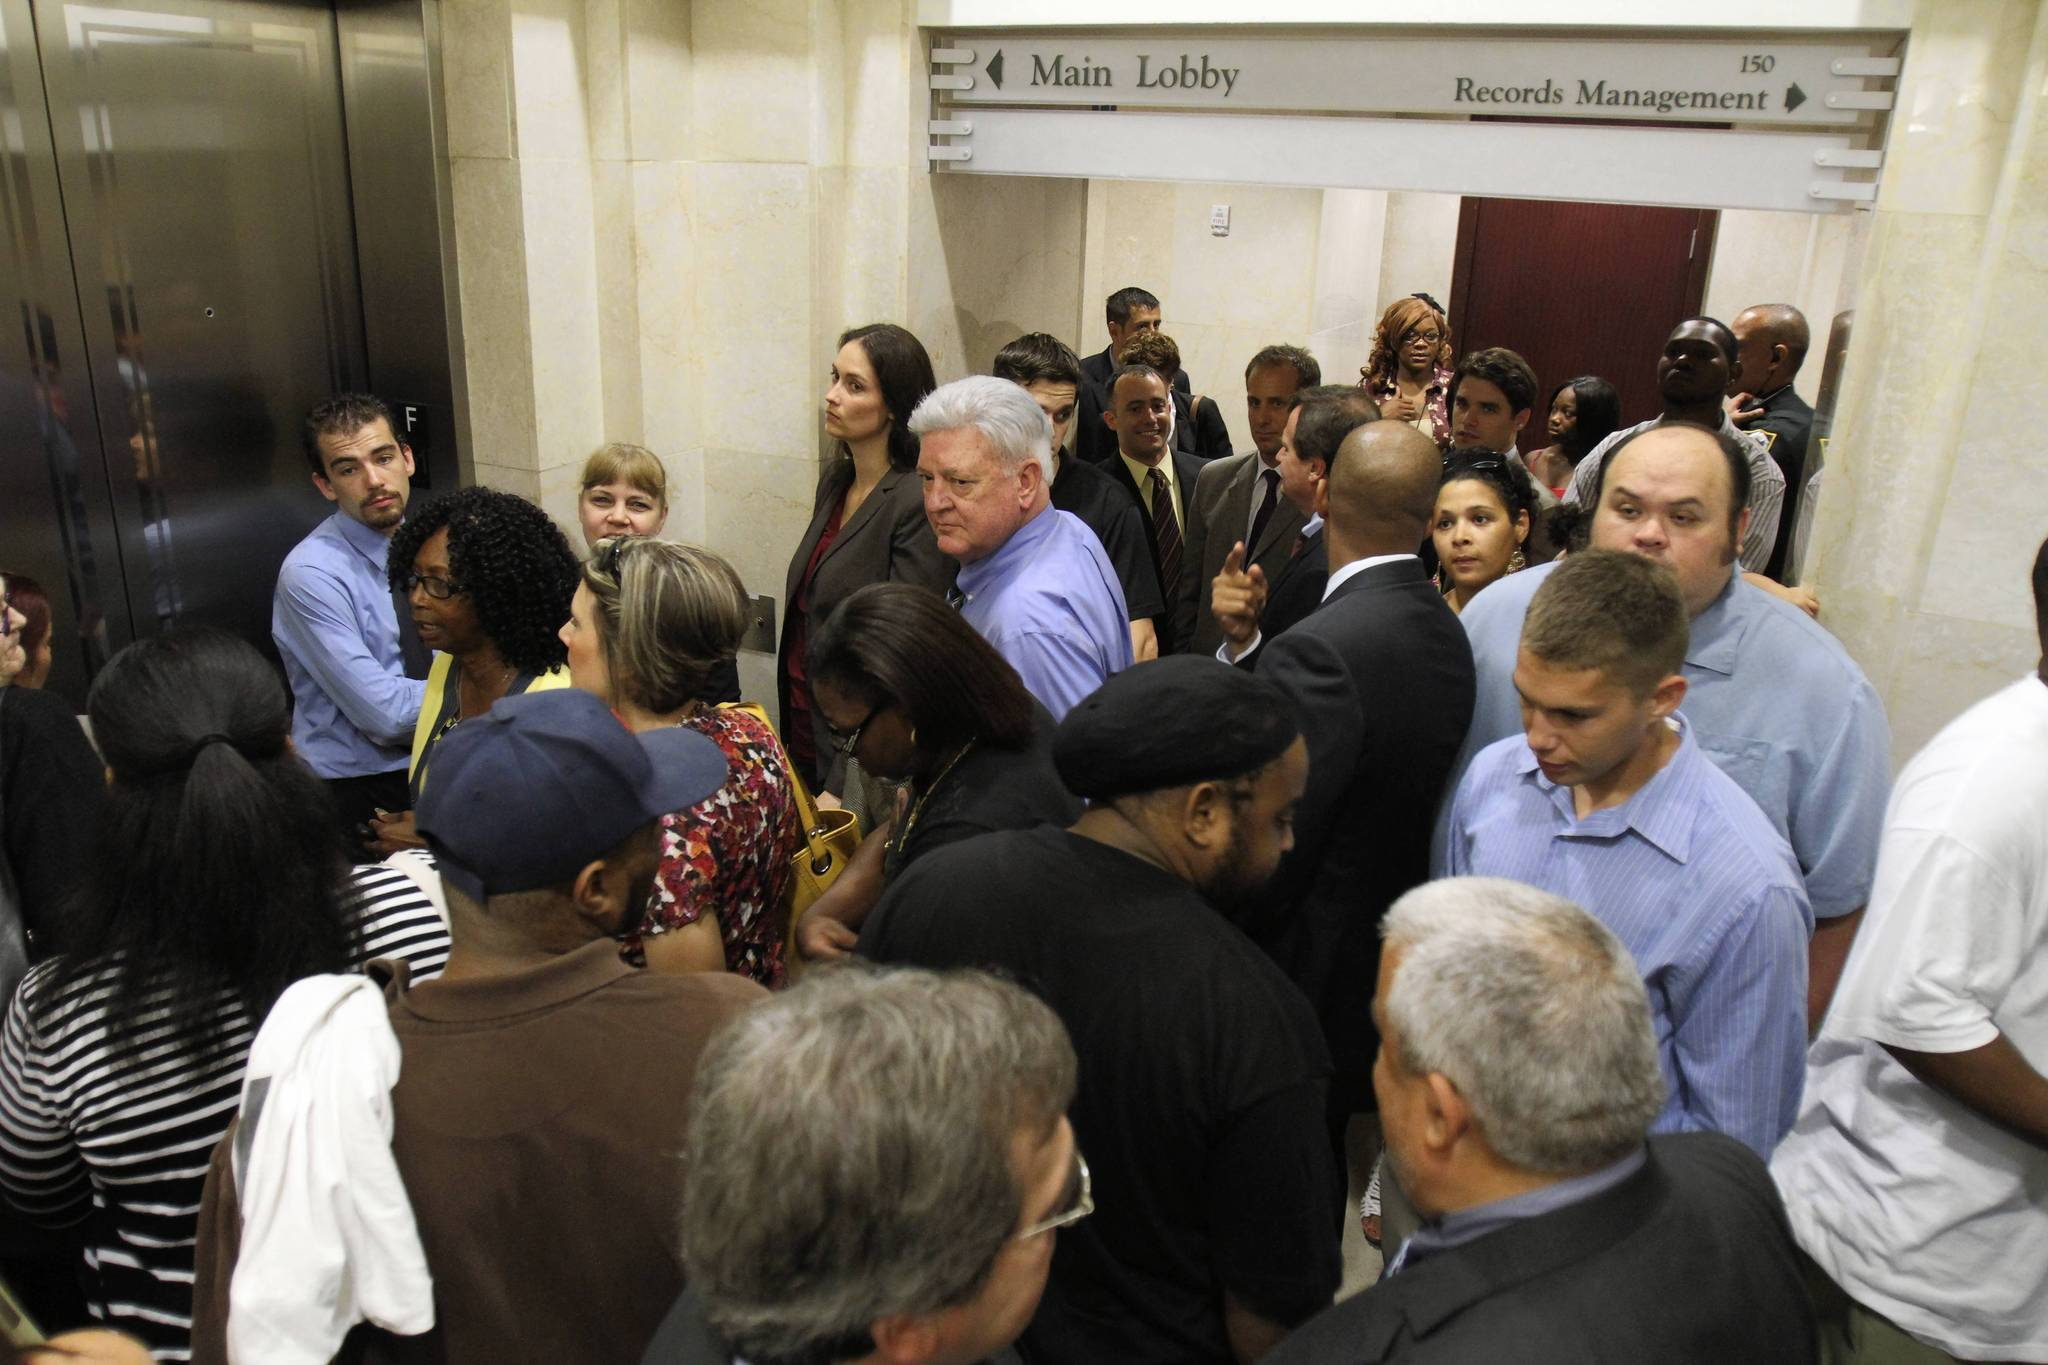 people in elevator. the orange county courthouse elevators are jammed with people waiting to get on and off in elevator l